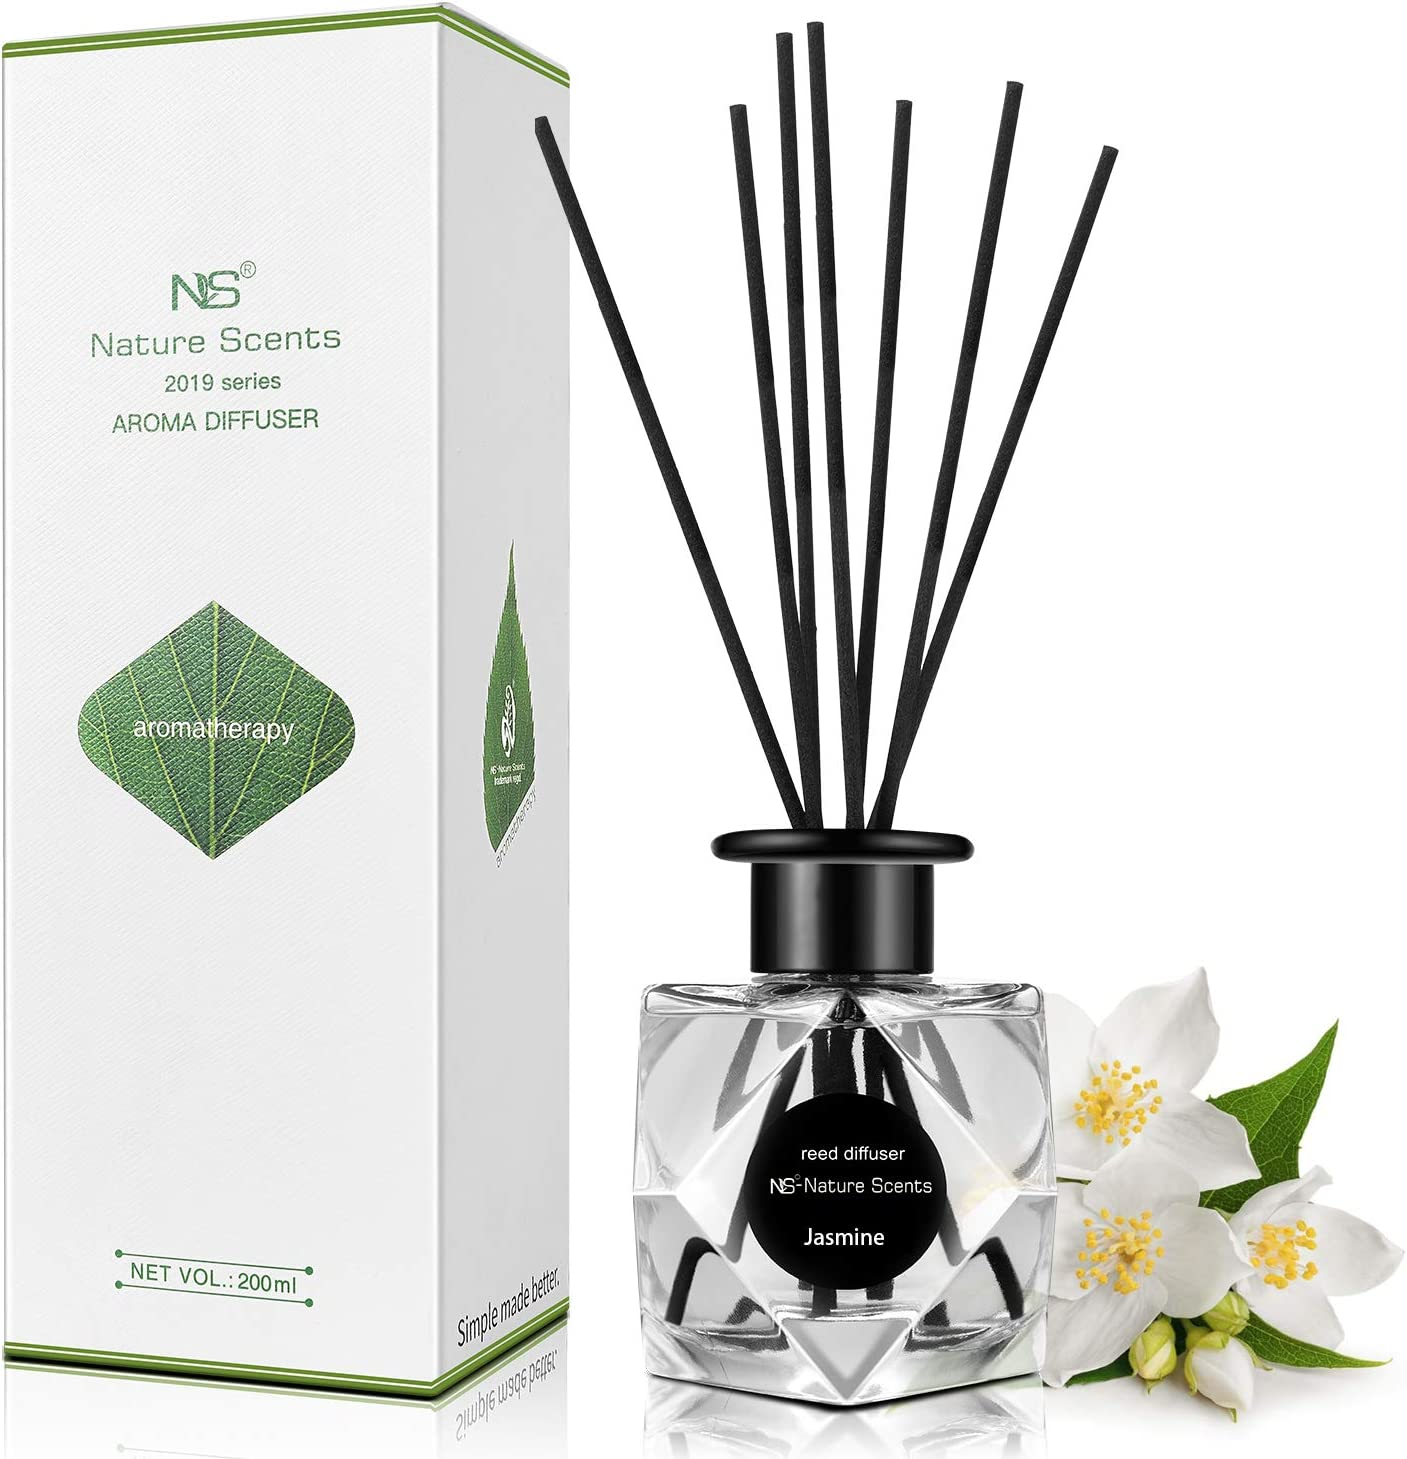 ap airpleasure Natural Reed Diffuser Set, Home Fragrance & Purify Air, Room Freshener Aromatherapy Essential Oil Reed Diffuser for Gift & Stress Relief 200ml / 6.76 oz (Jasmine)